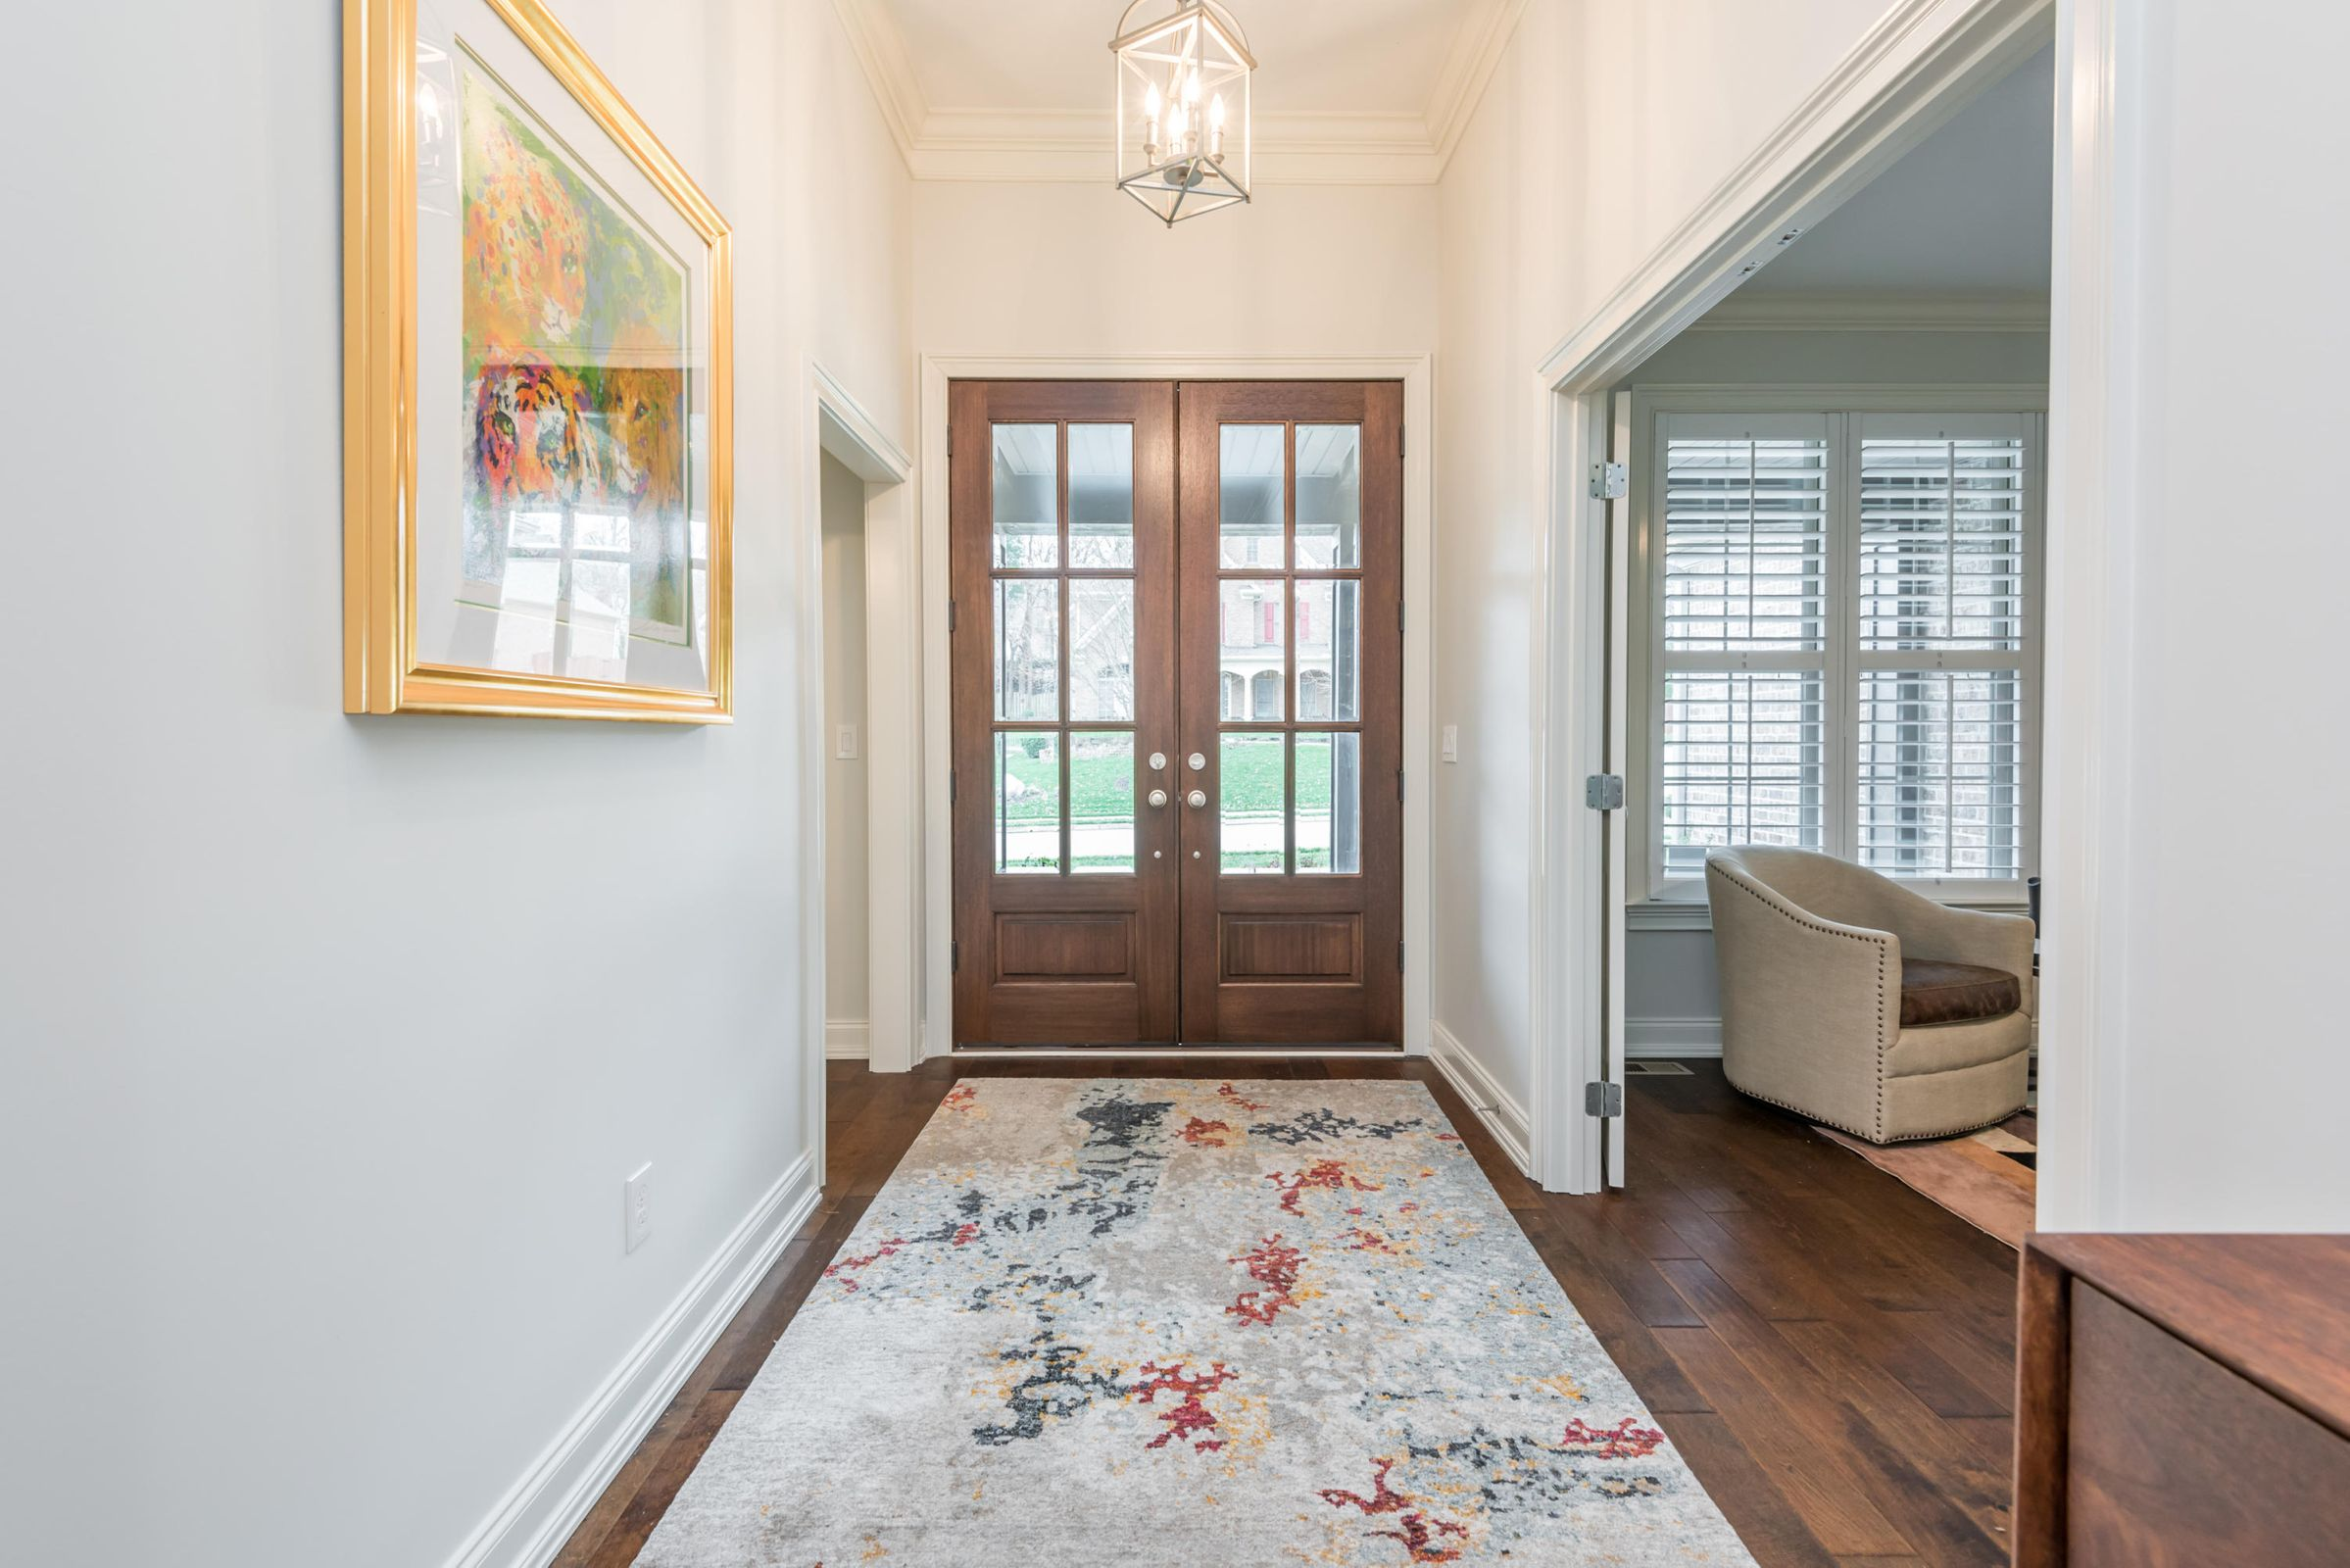 Foyer with 11 Foot Ceilings